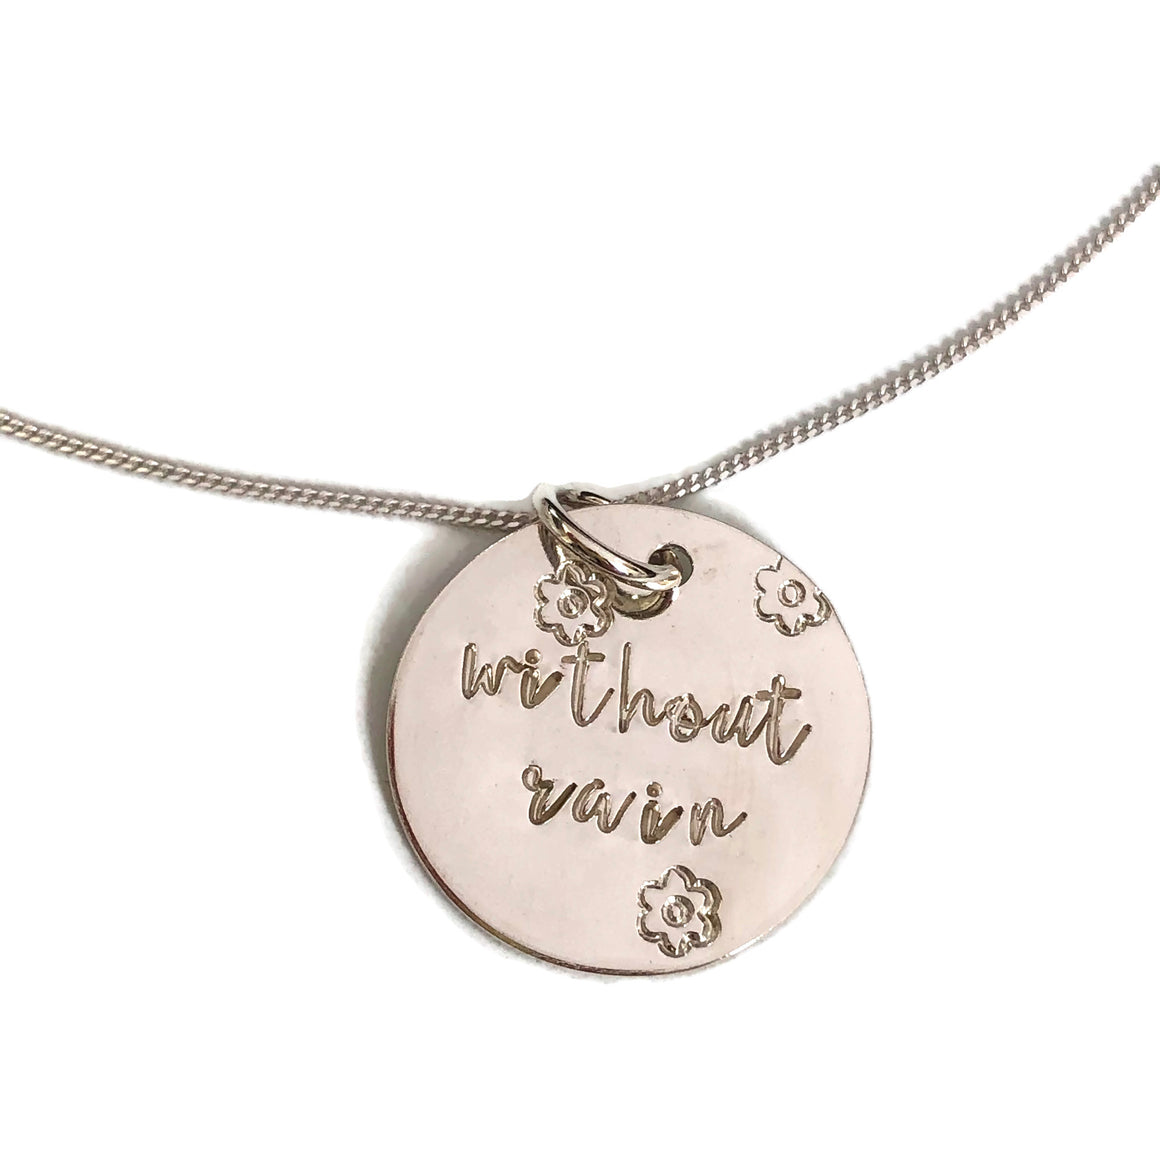 Without Rain necklace